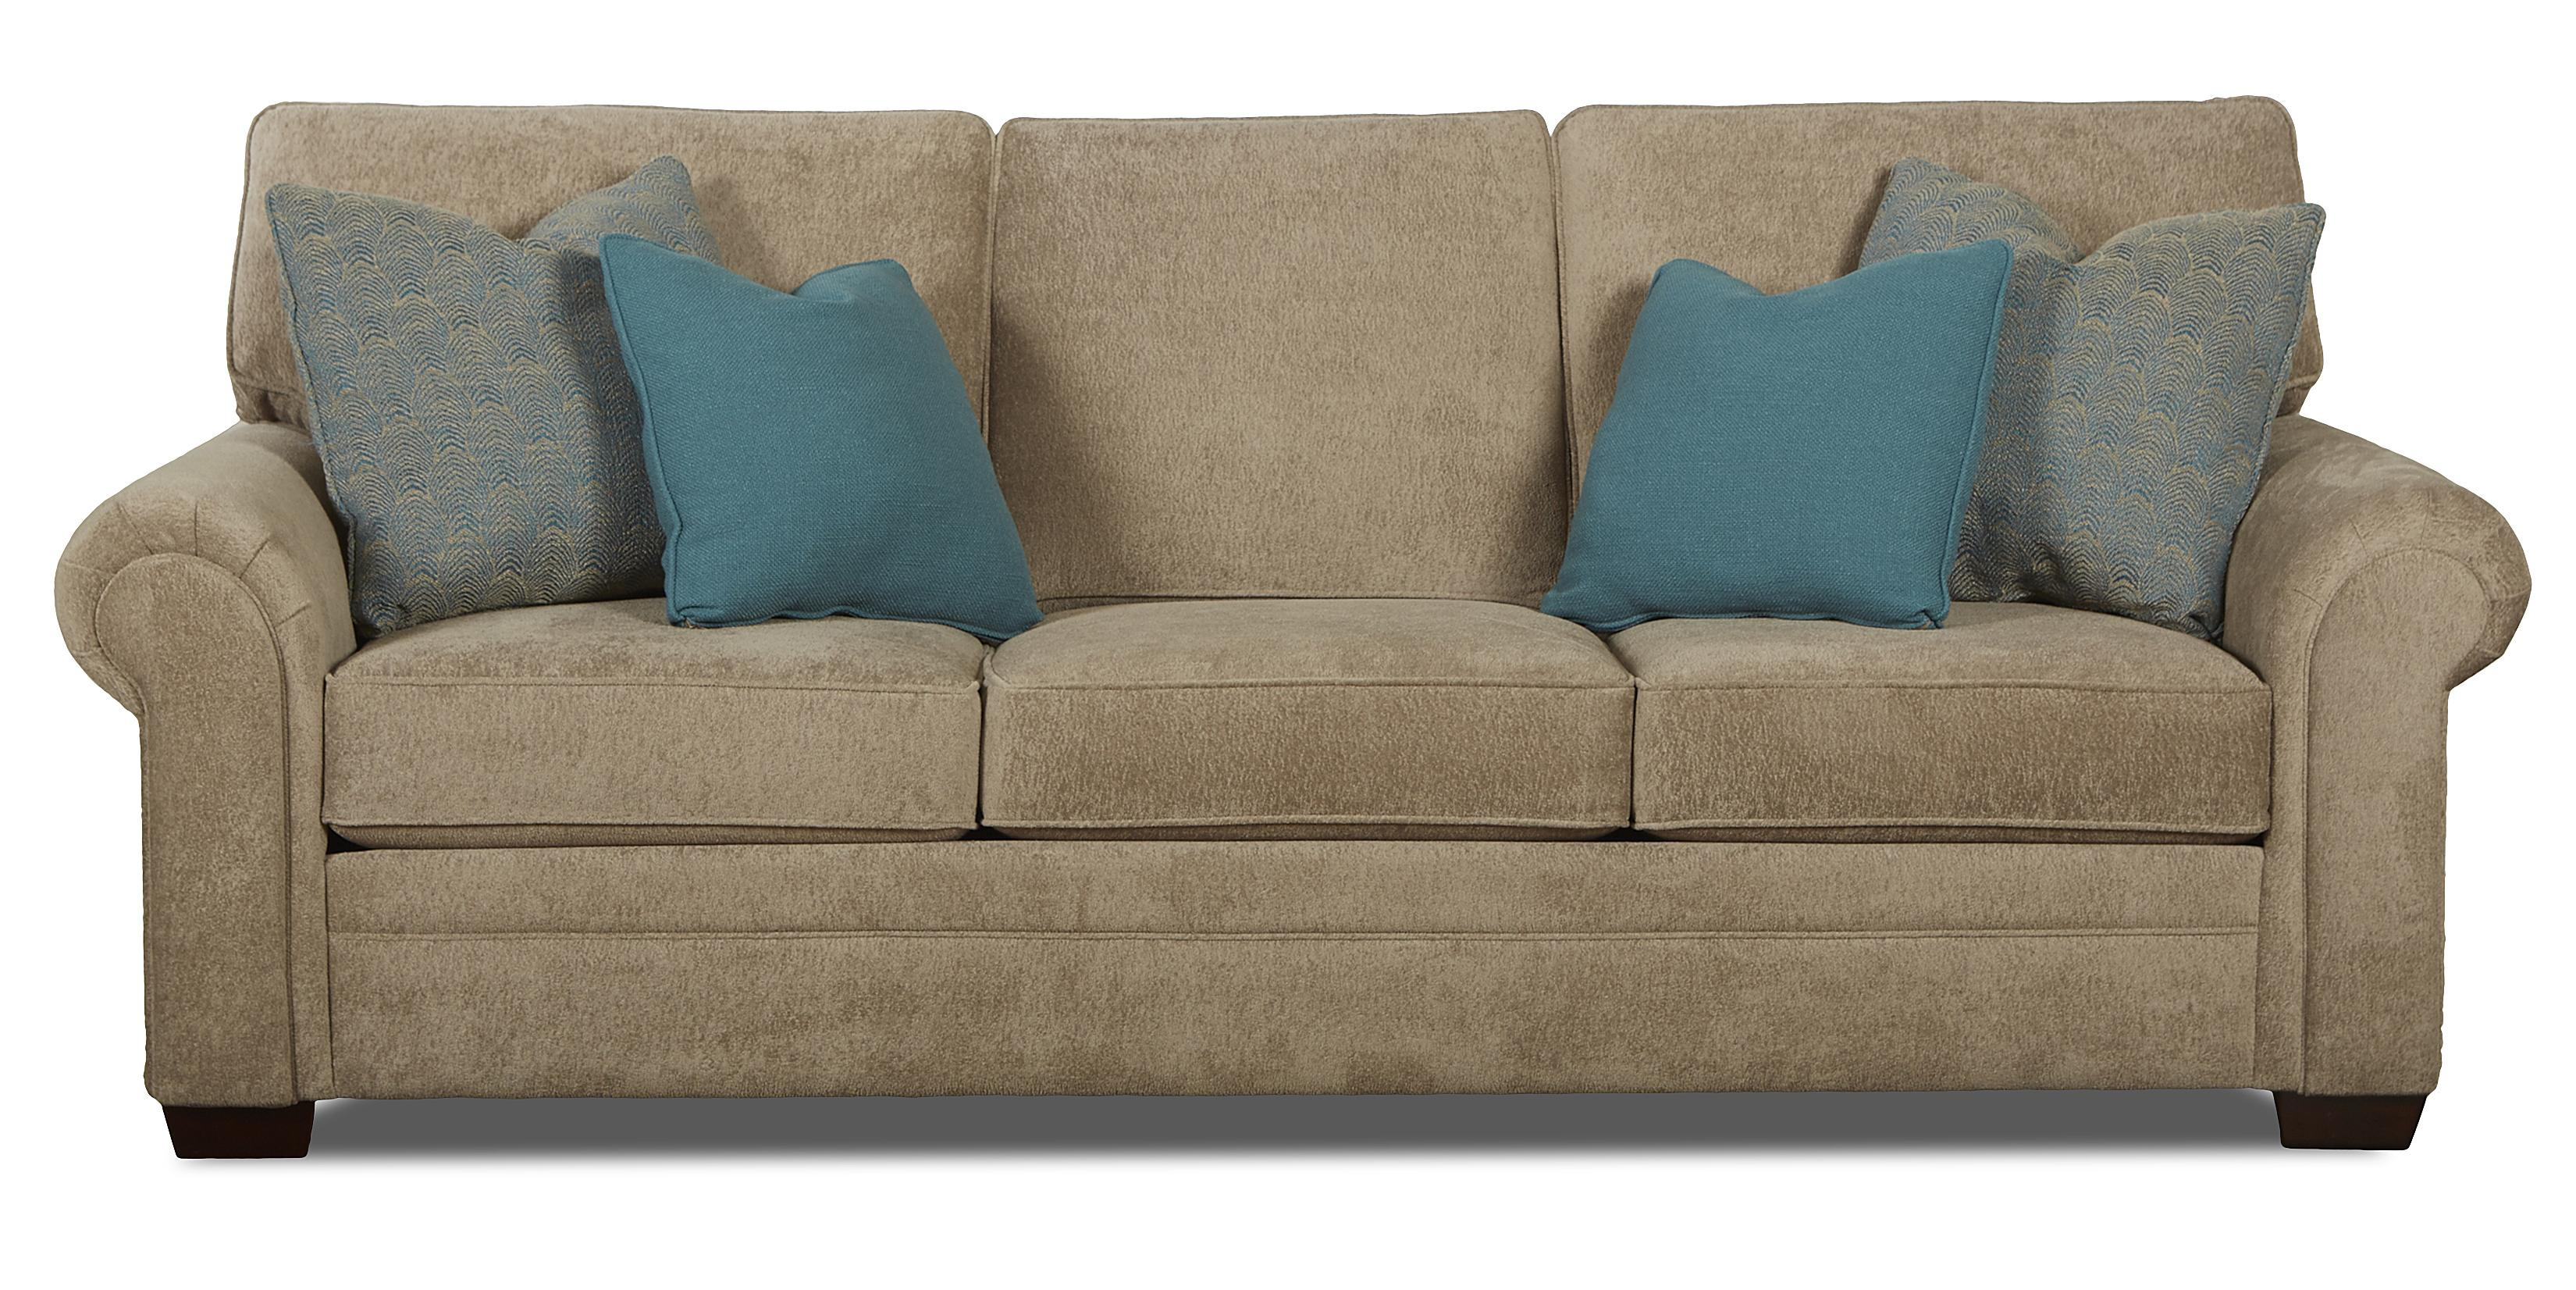 Traditional Queen Inner Spring Sleeper Sofa By Klaussner